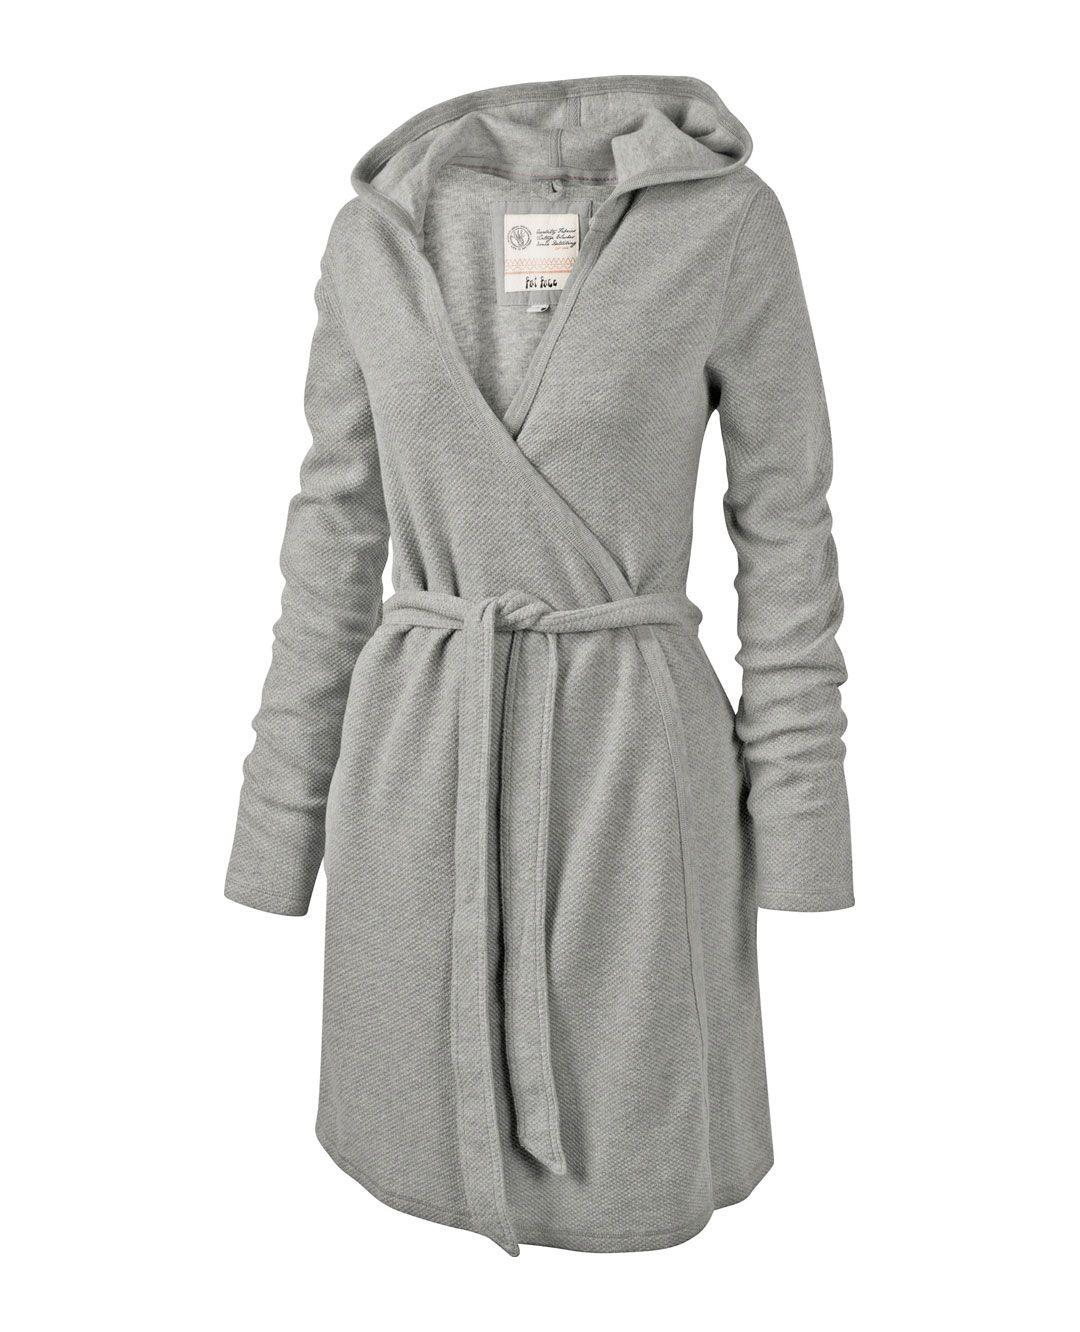 Large image of Waffle Dressing Gown - opens in a new window ...